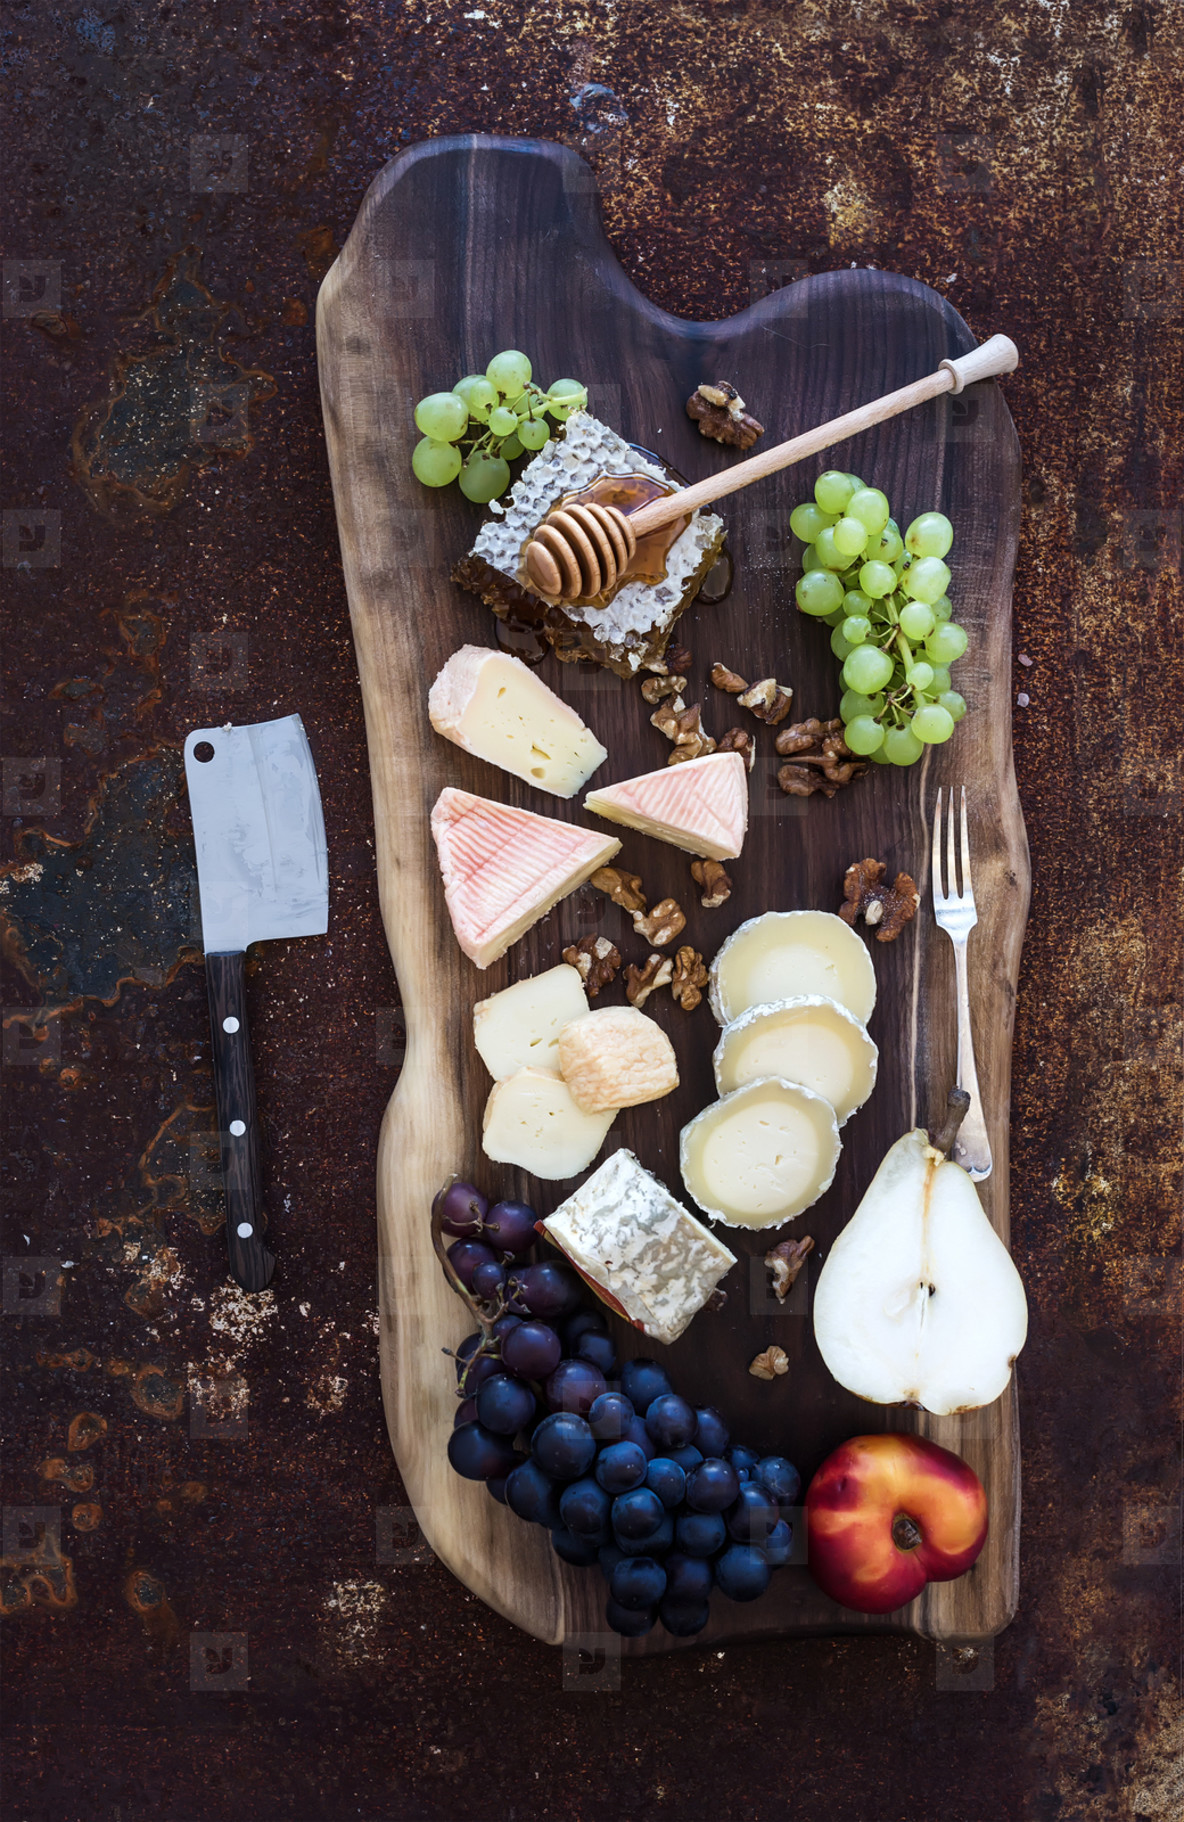 Wine appetizers set  French cheese selection  honeycomb  grapes  peach and walnuts on rustic wooden board over dark grunge metal background  Top view